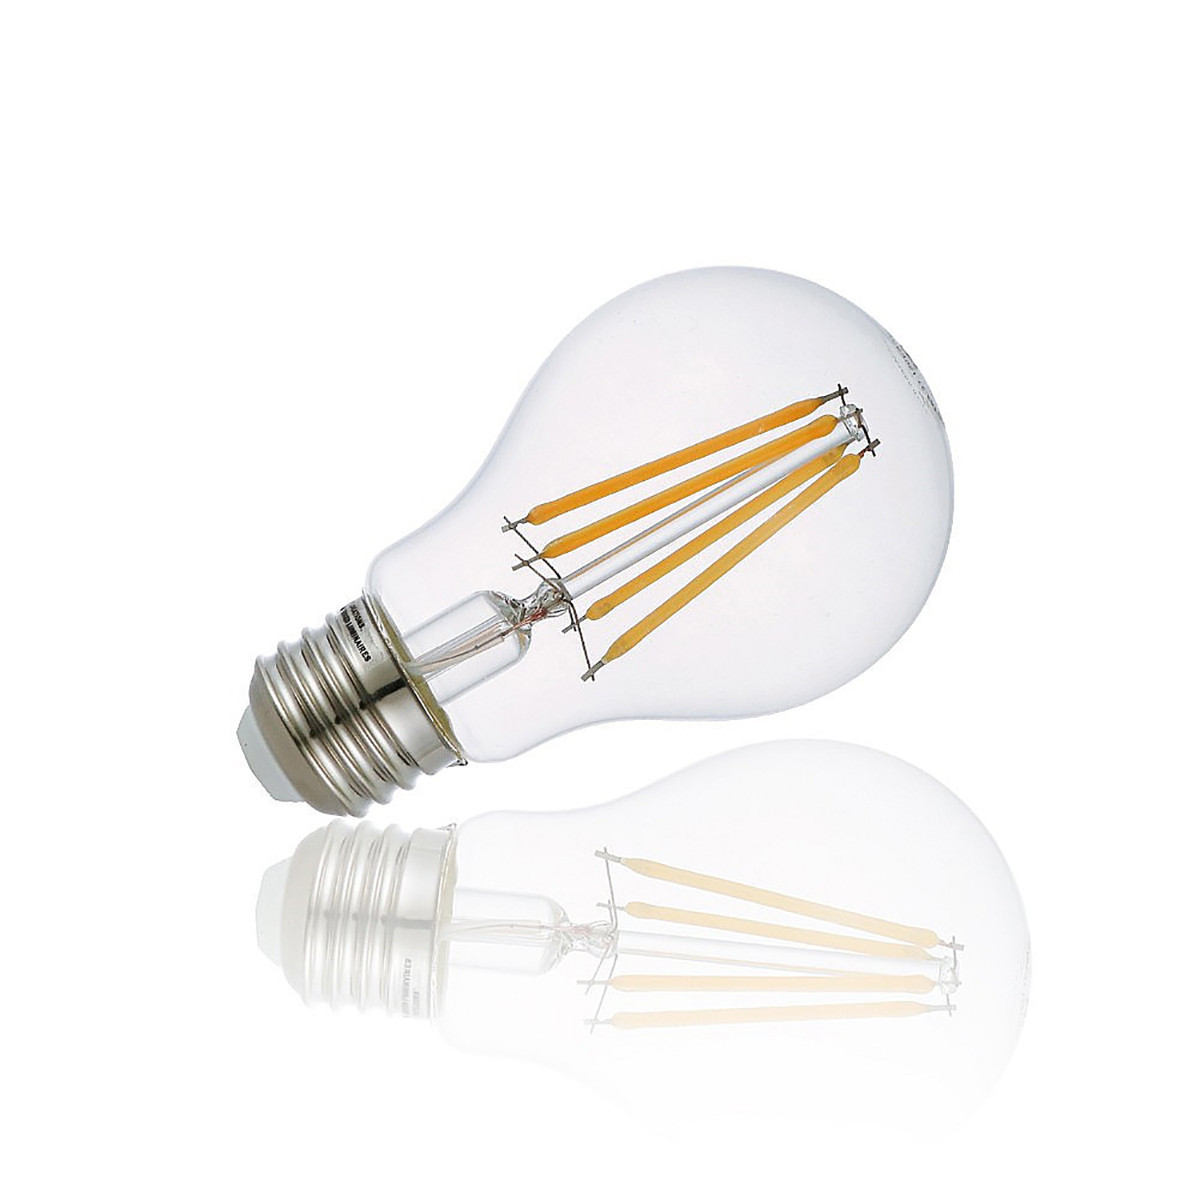 4W Filament LED Globe Light Bulb Light A60 Chandelier Bulb with E26 Base 40W Equivalent Halogen Replacement